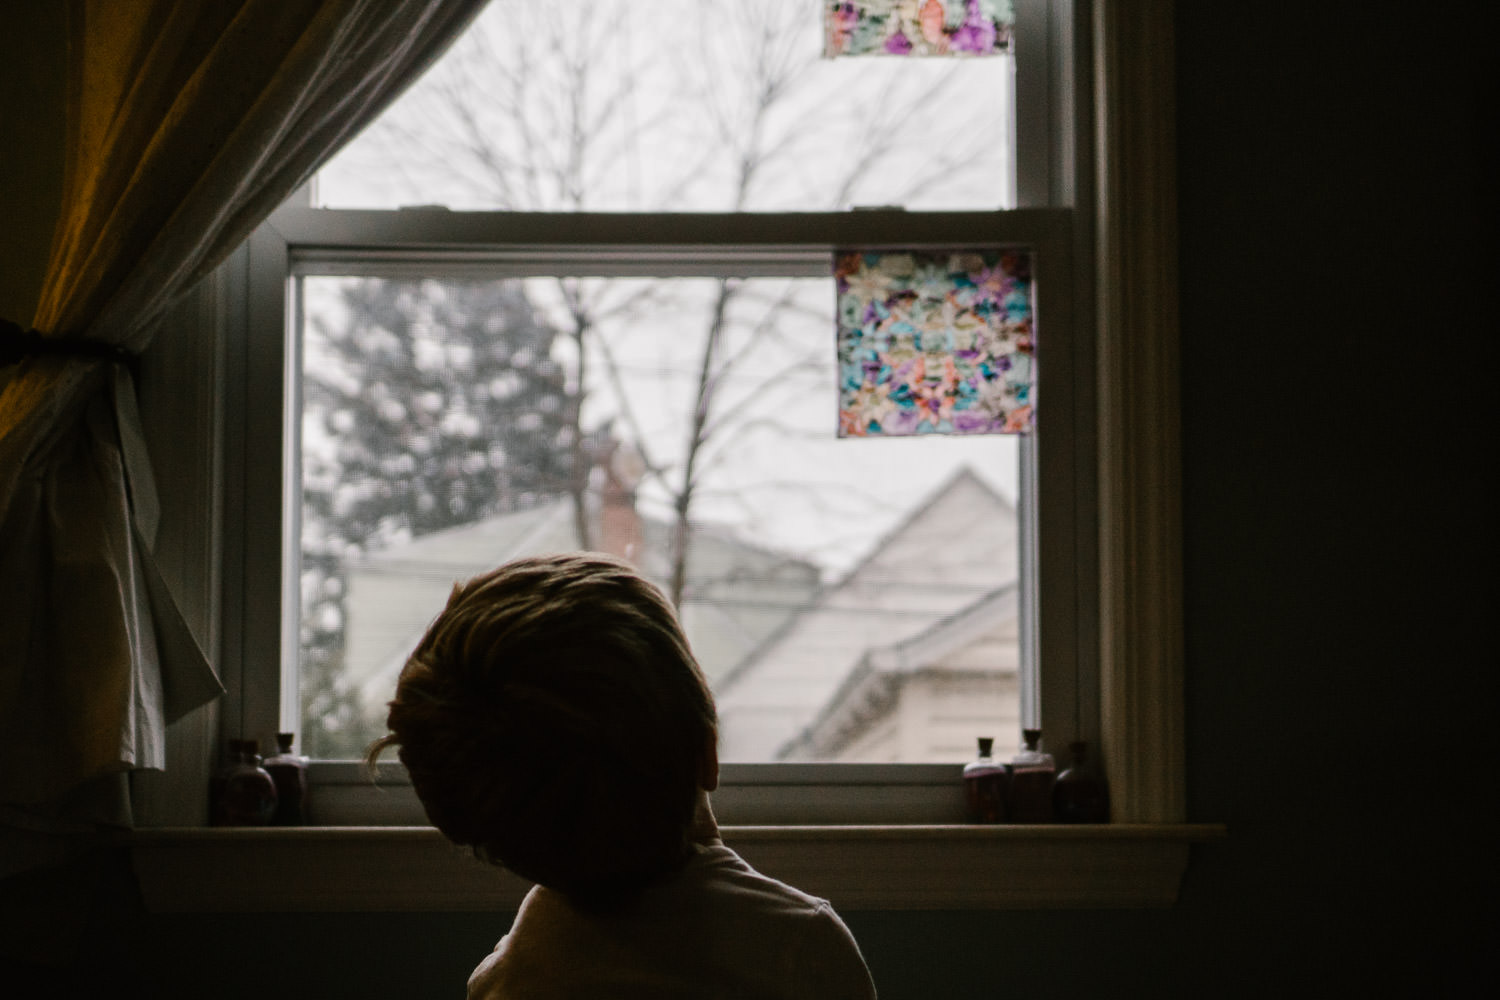 A little boy looks out his bedroom window.